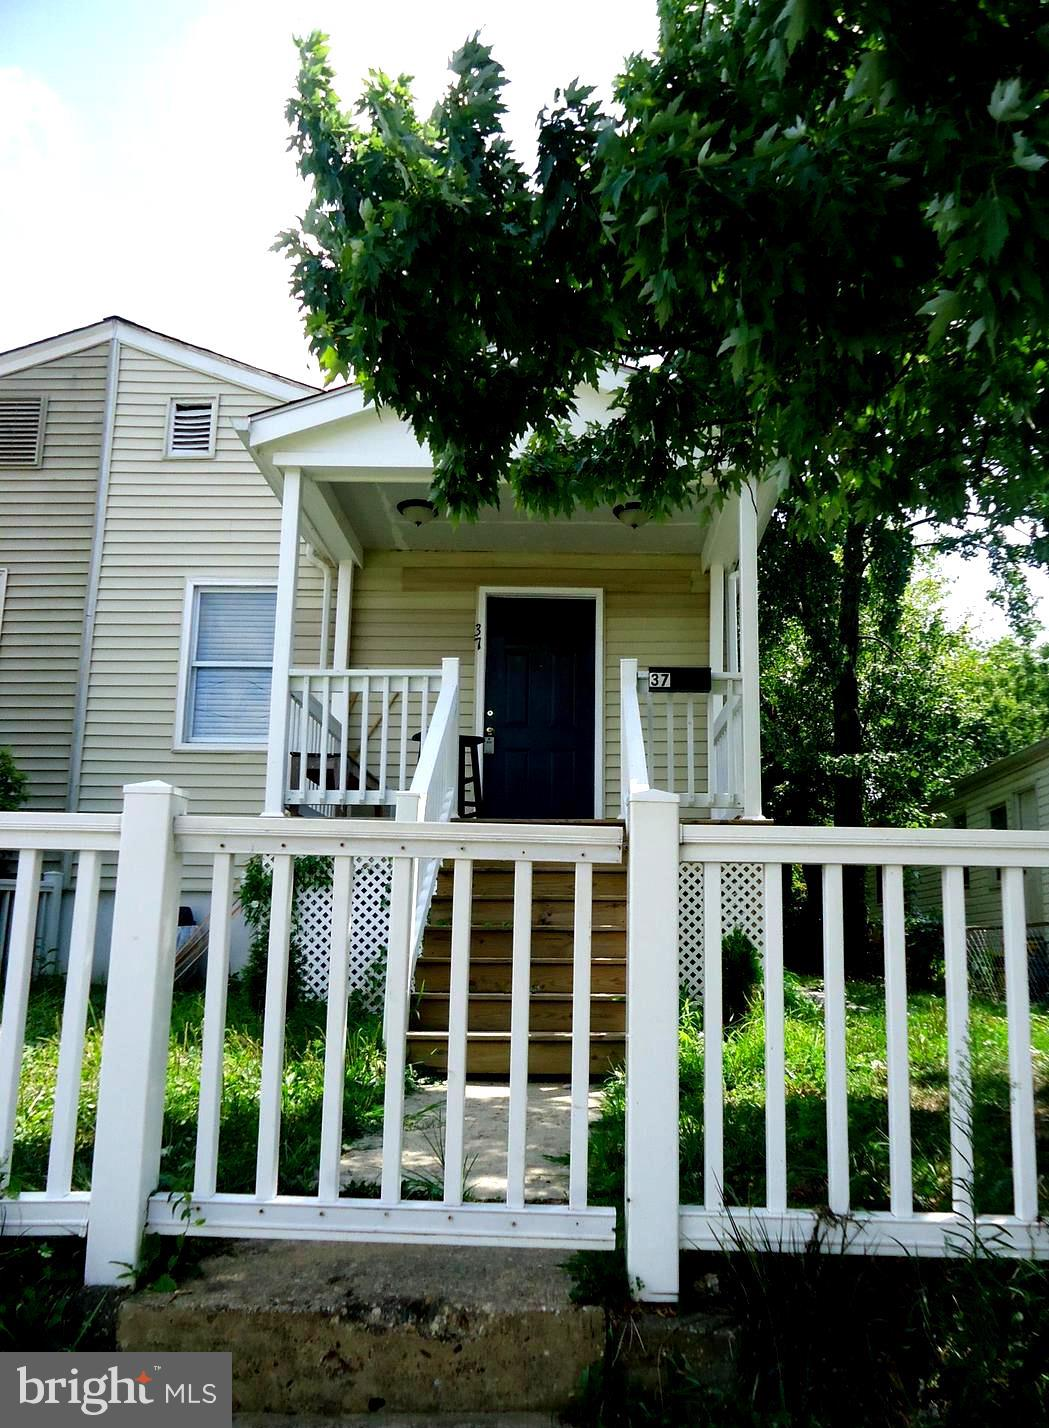 Great opportunity to buy a home! This is 2 bedroom 2 bath duplex with a separate mother-in-law suite with kitchenette and full bathroom. Spectacular location. Minutes from Crystal City, Del Ray, National Airport and DC.  3 exterior doors! Sold in As-in condition.